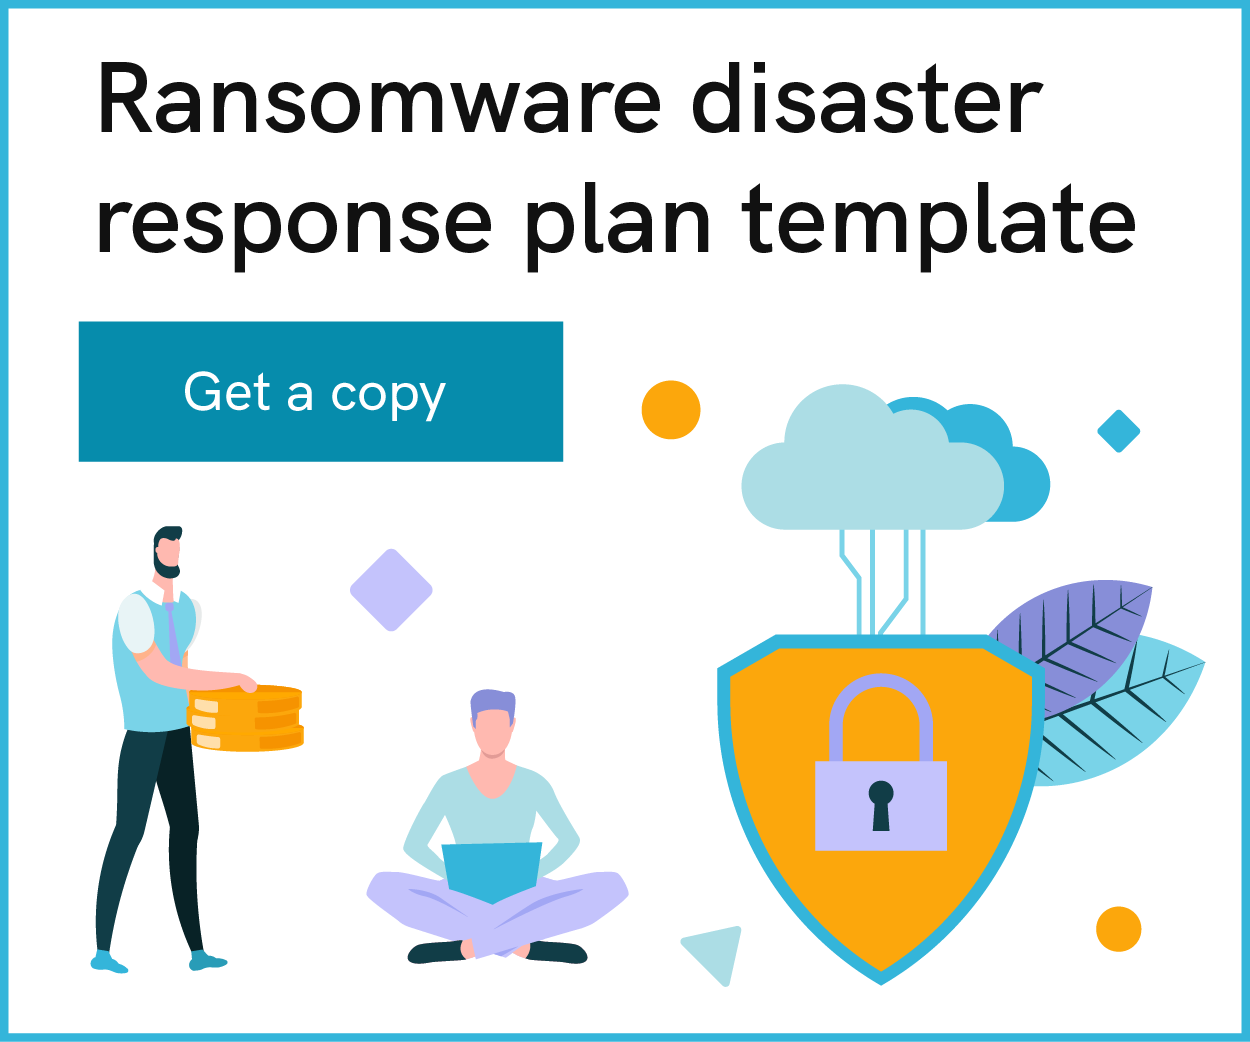 ransomware disaster plan template